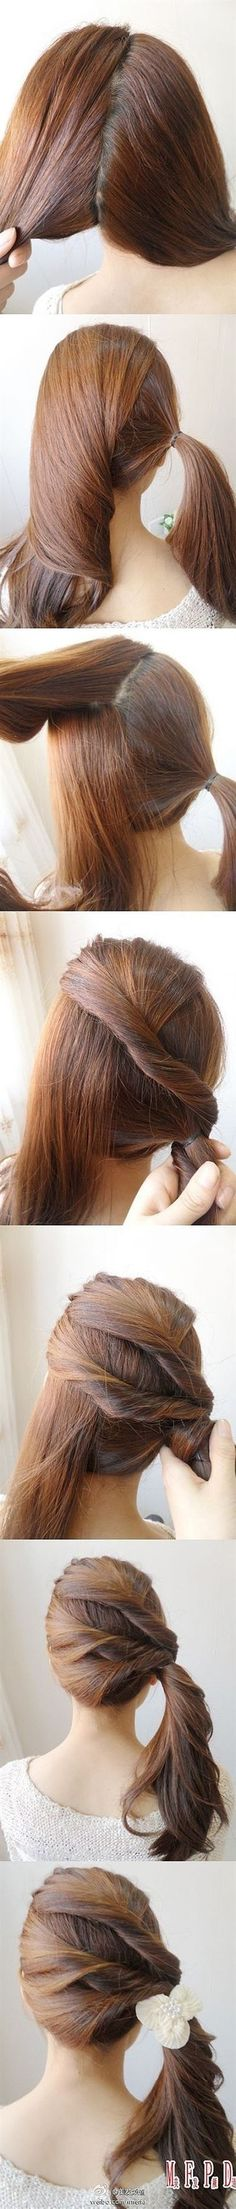 20 Tips And Tricks For Your Perfect Ponytail